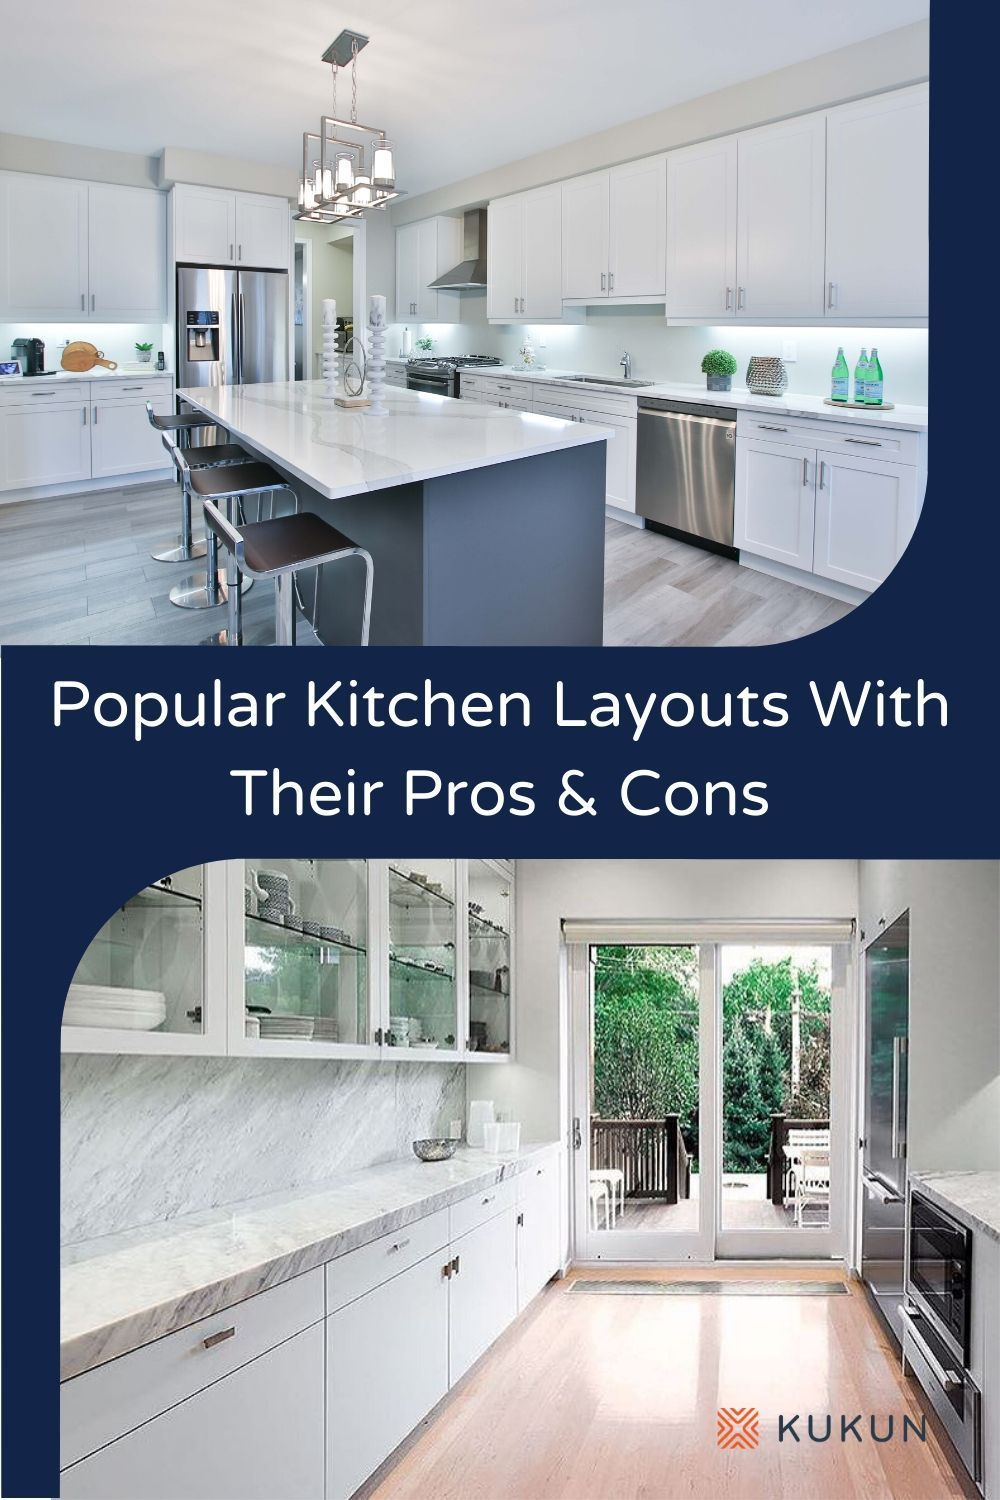 Popular Kitchen Layout Designs And Their Major Pros And Cons In